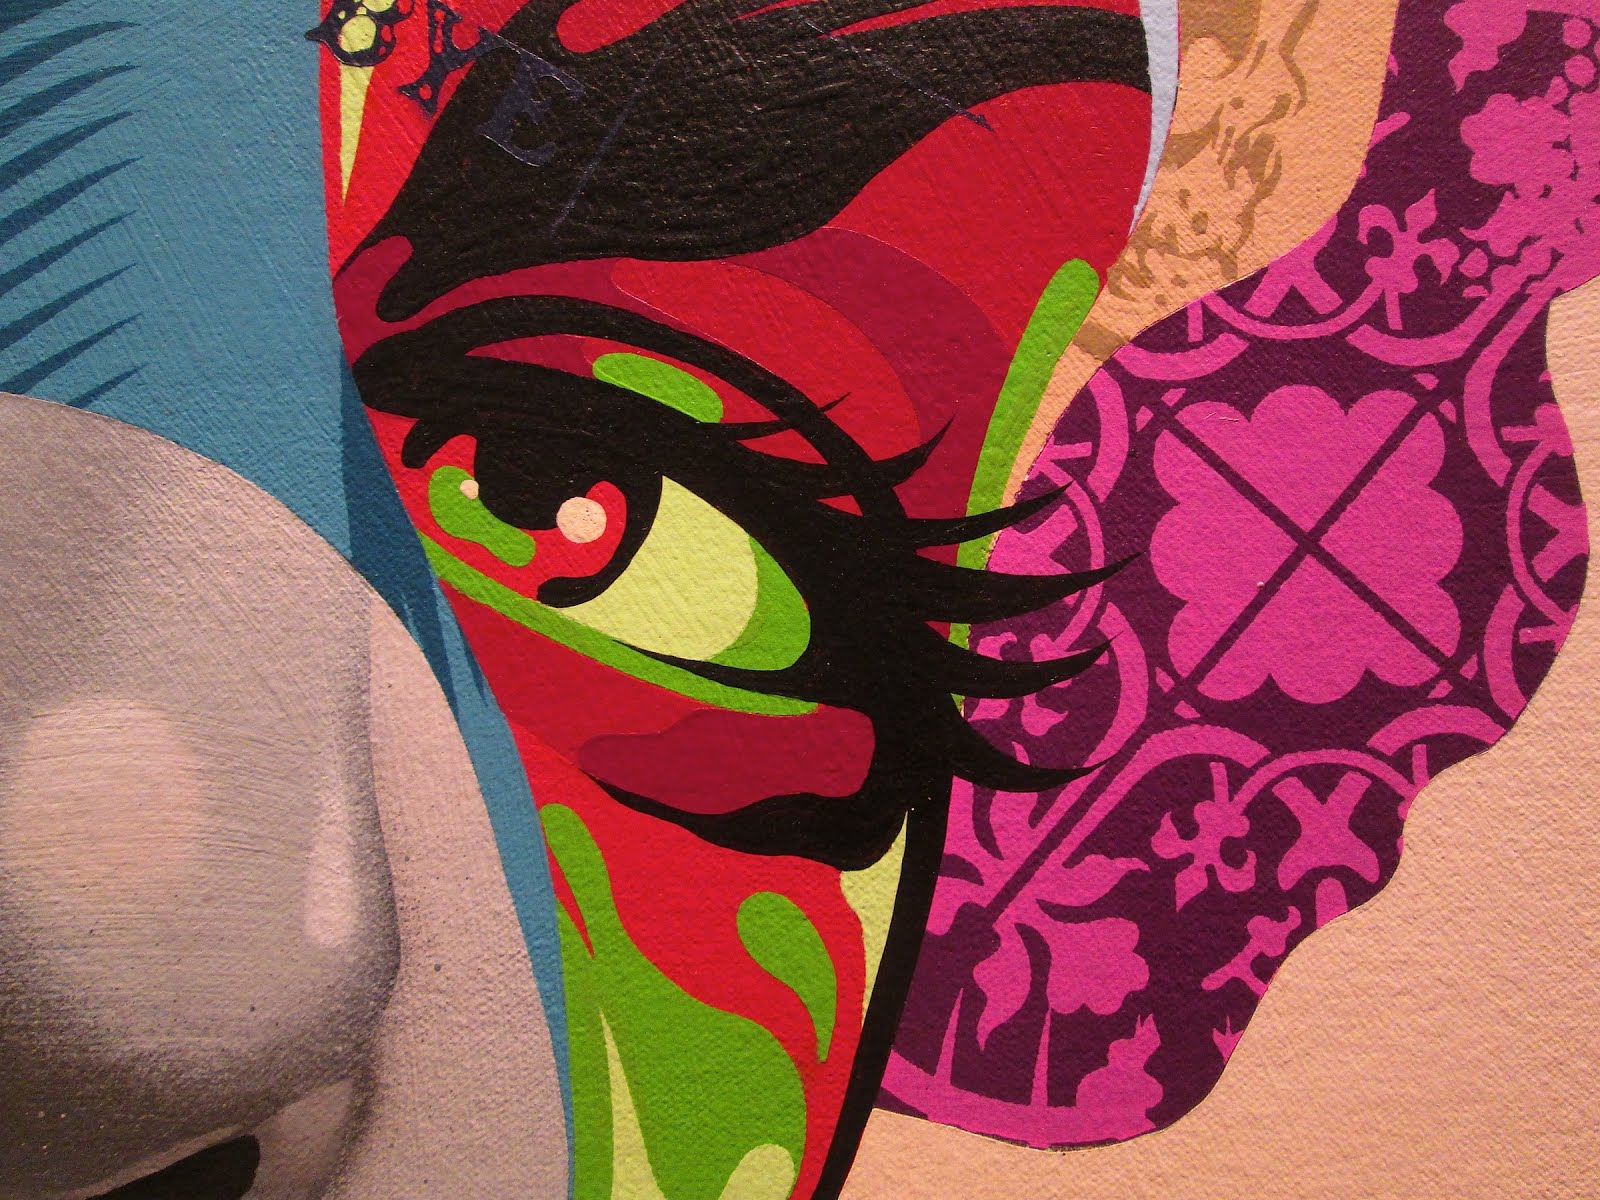 TRISTAN EATON : The Painter